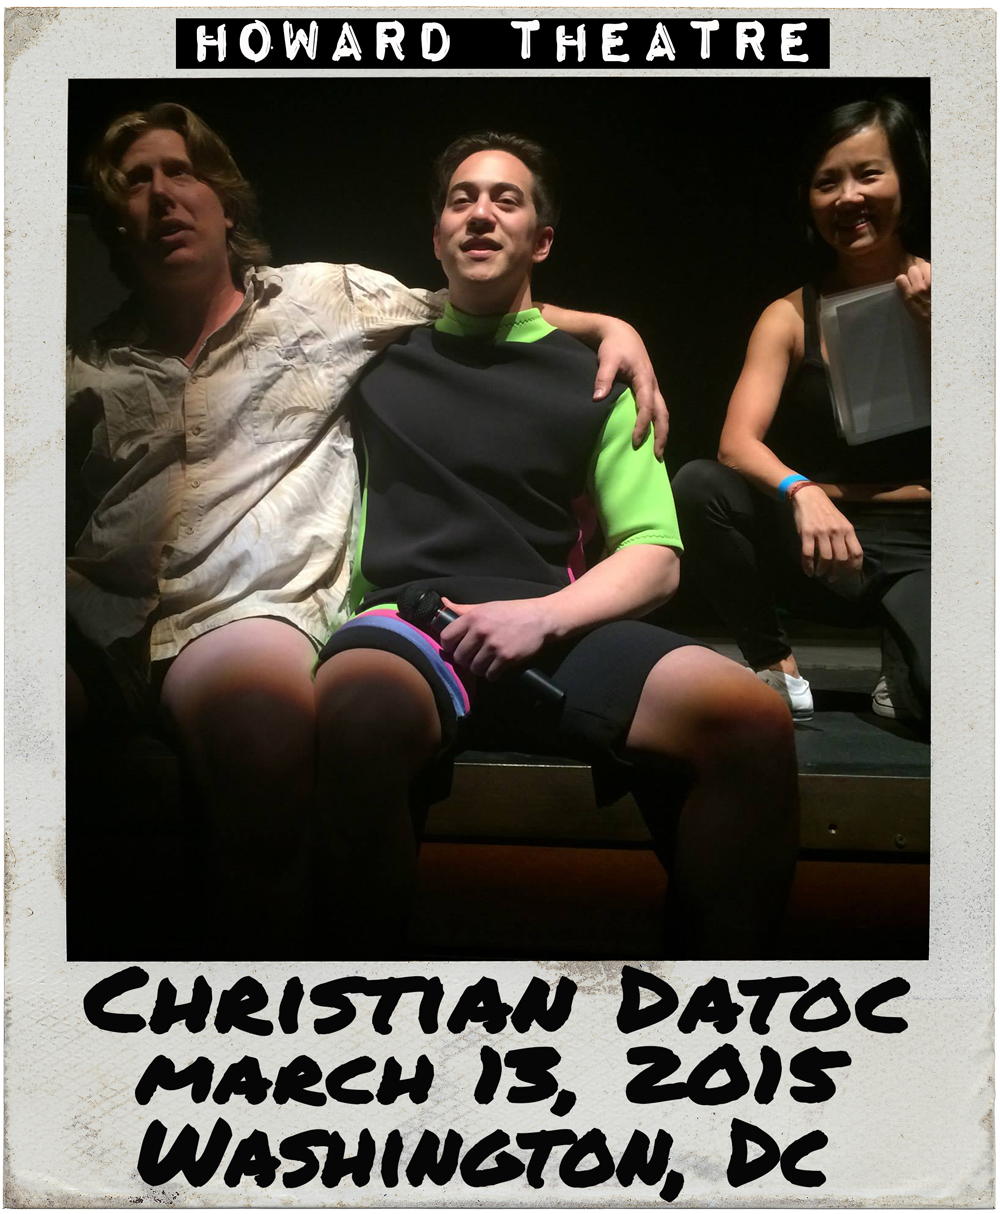 03_13_15_Christian-Datoc_Howard-Theatre_DC.png